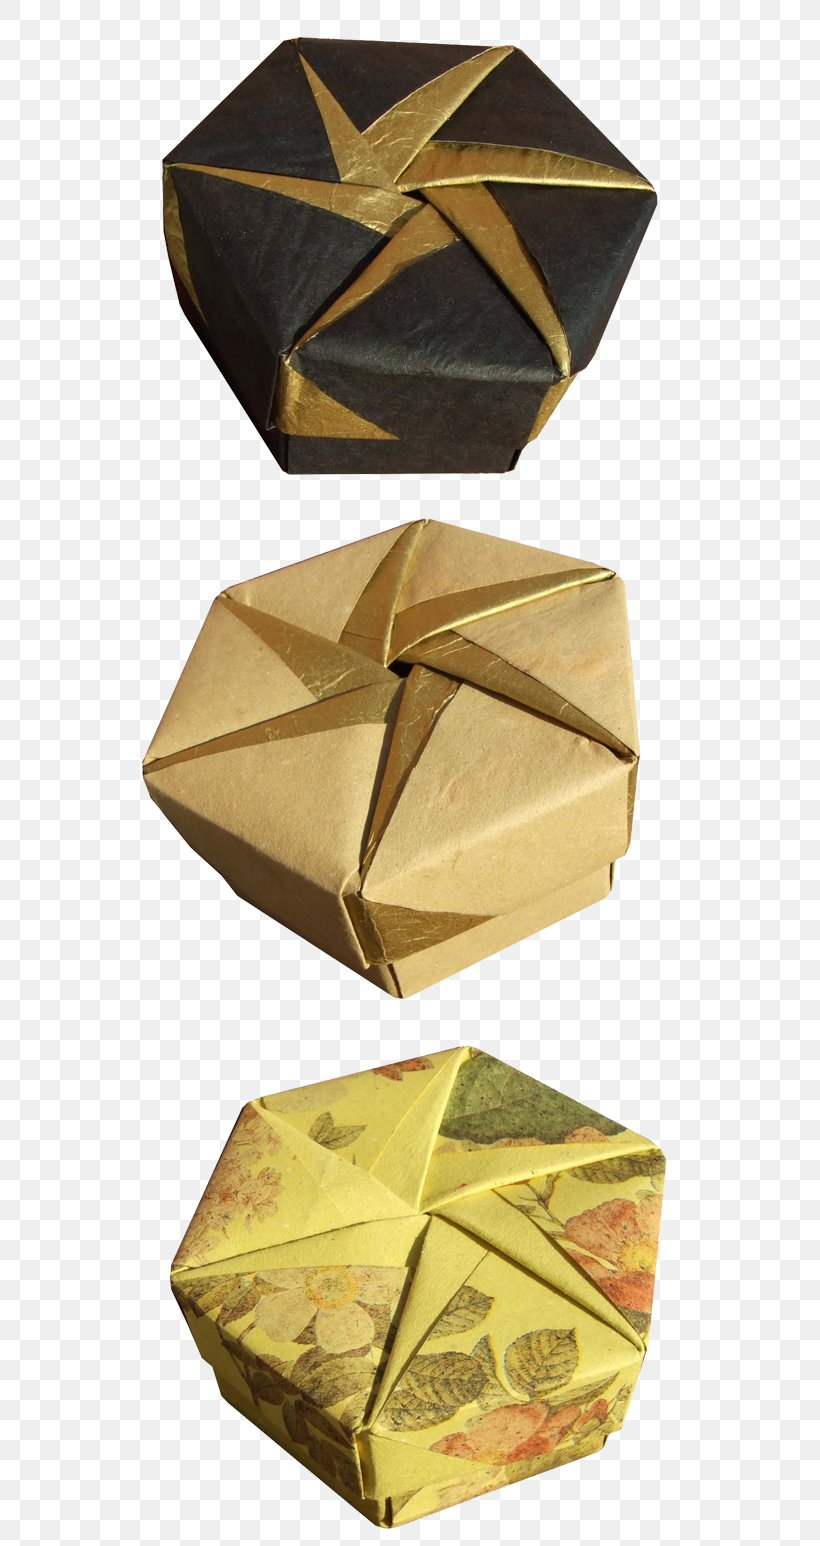 Origami Paper Modular Origami Box, PNG, 650x1546px, Paper, Box, Craft, Decorative Box, Diagram Download Free